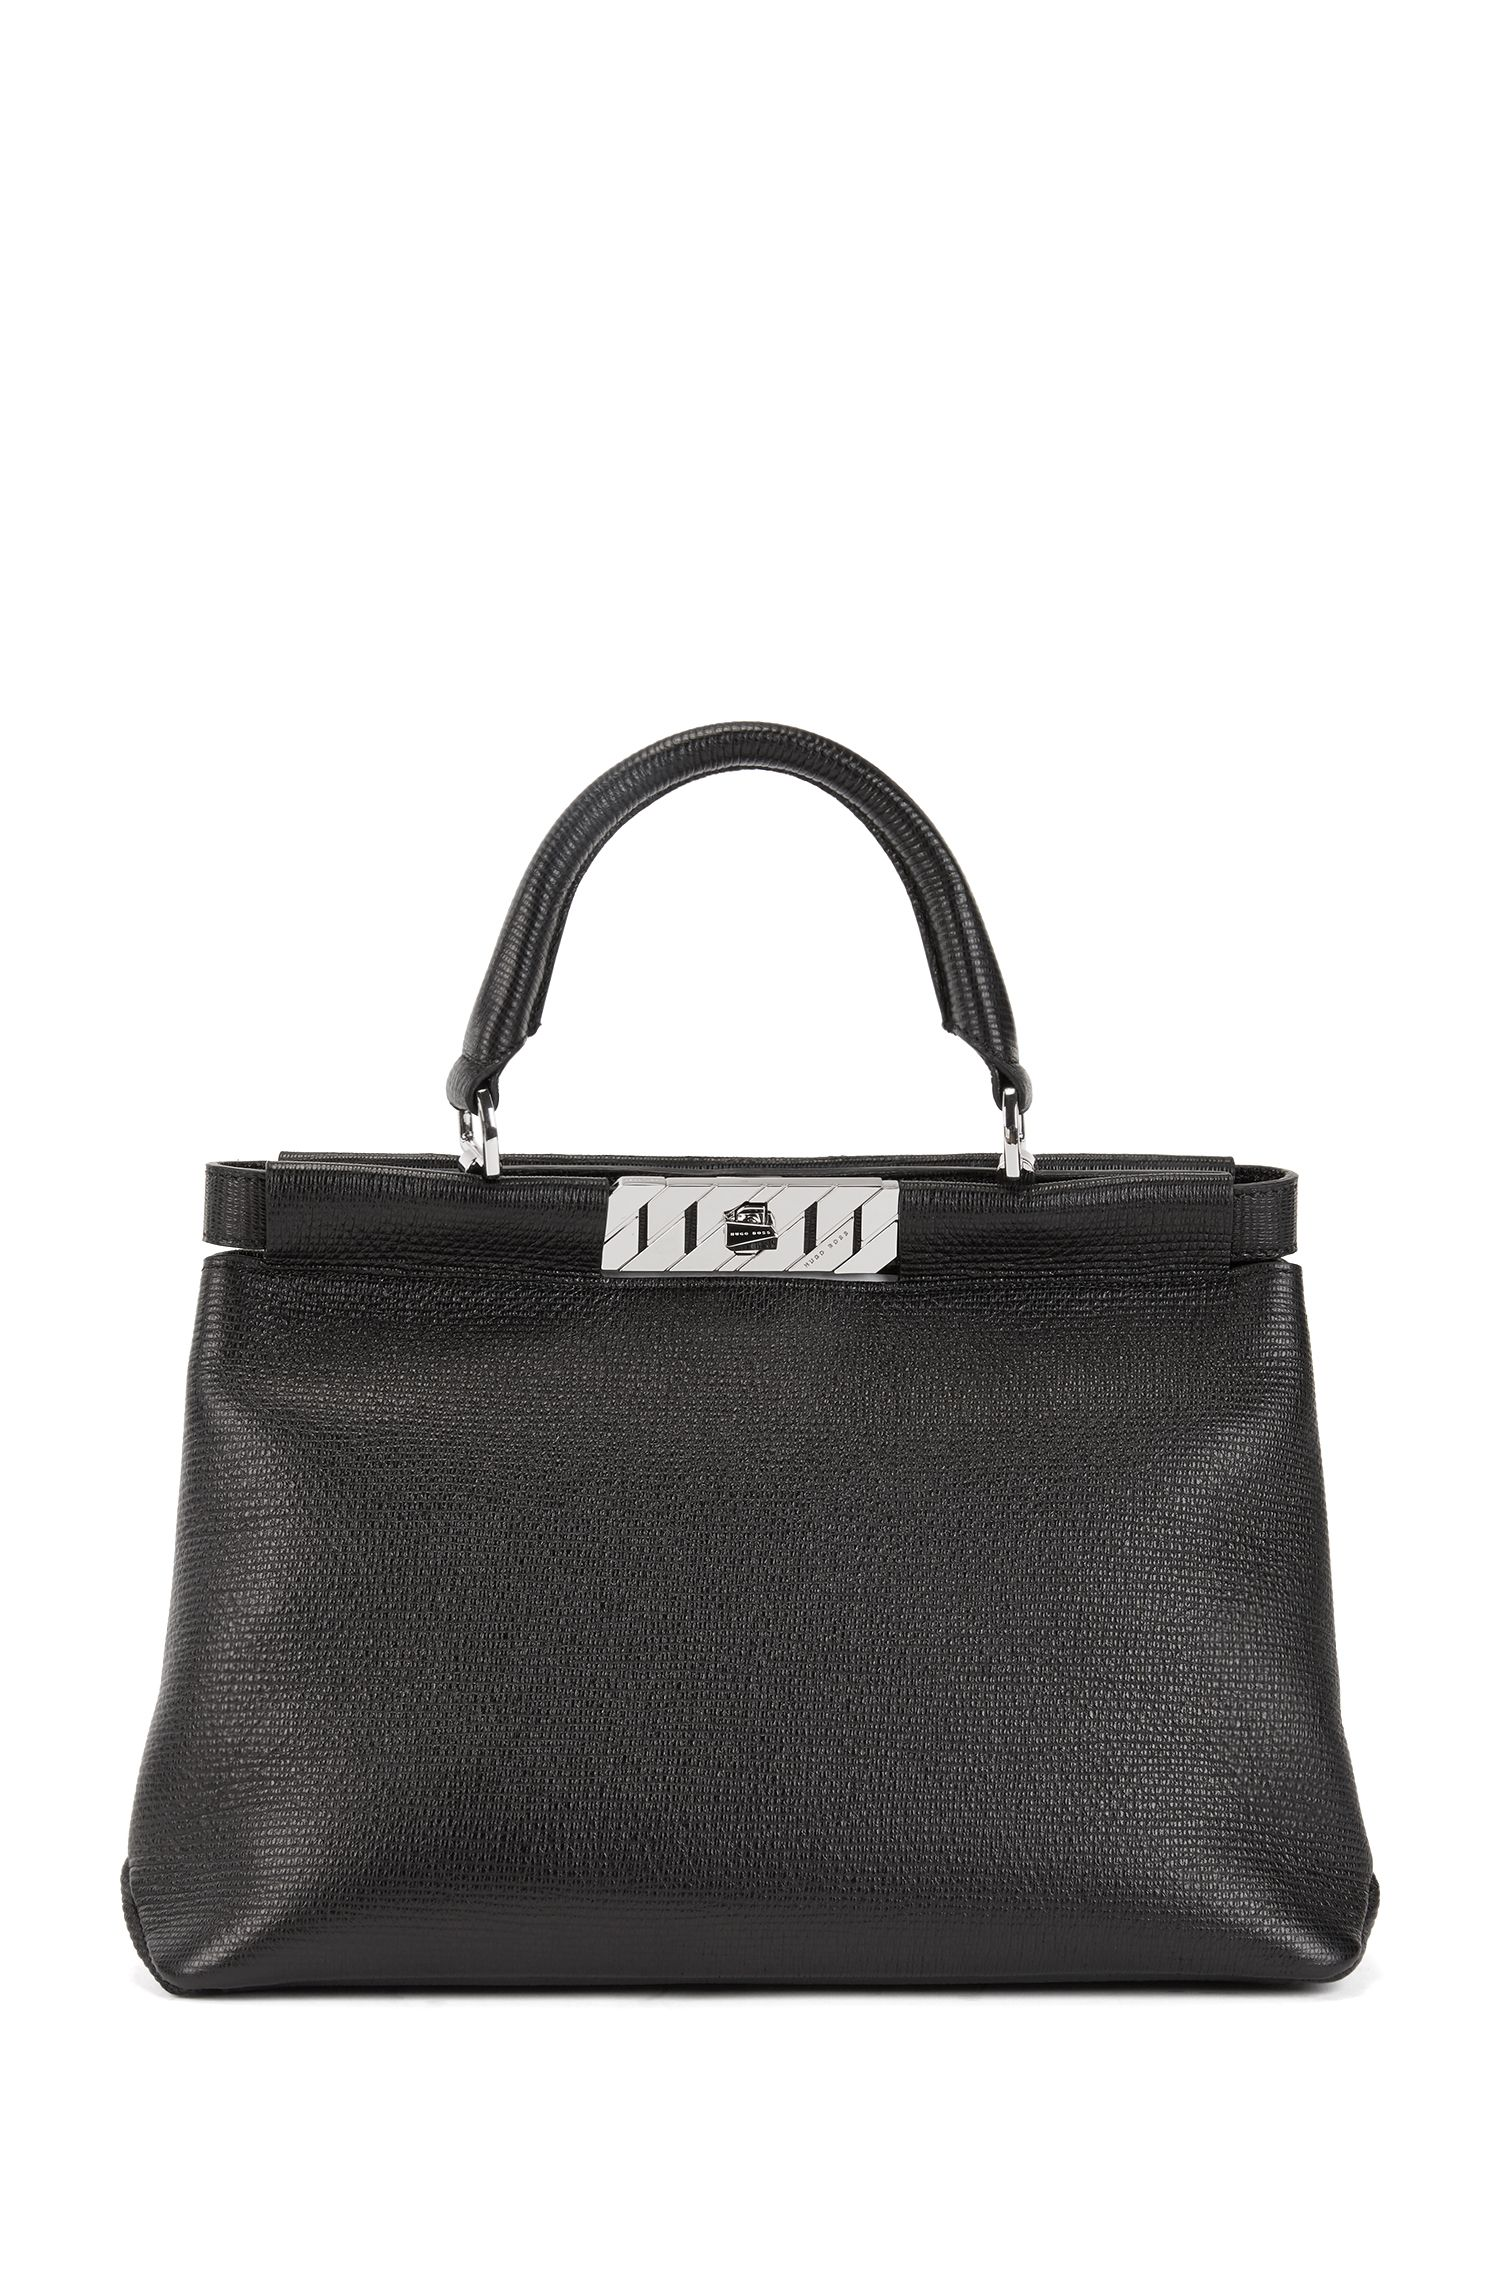 Top-handle tote bag in embossed Italian calf leather, Black